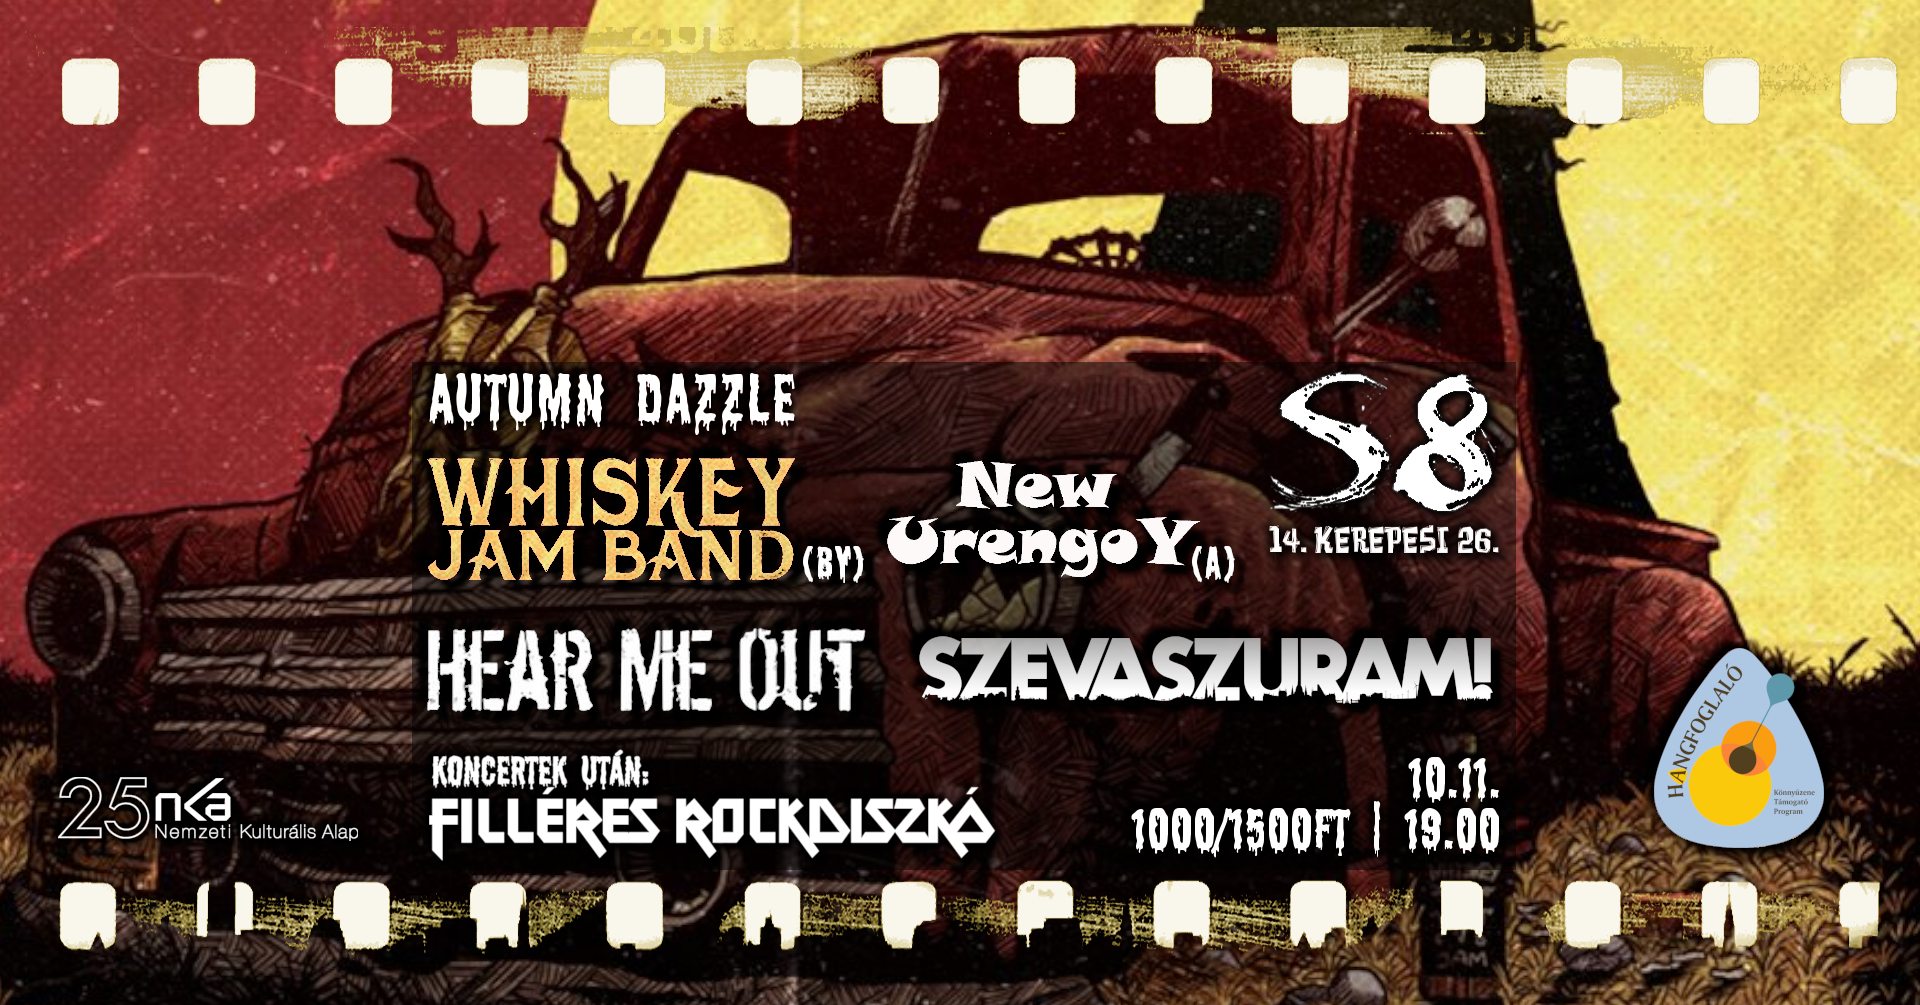 Autumn Dazzle - S8 RED I WhiskeyJamBand [BY] I New UrengoY [A]